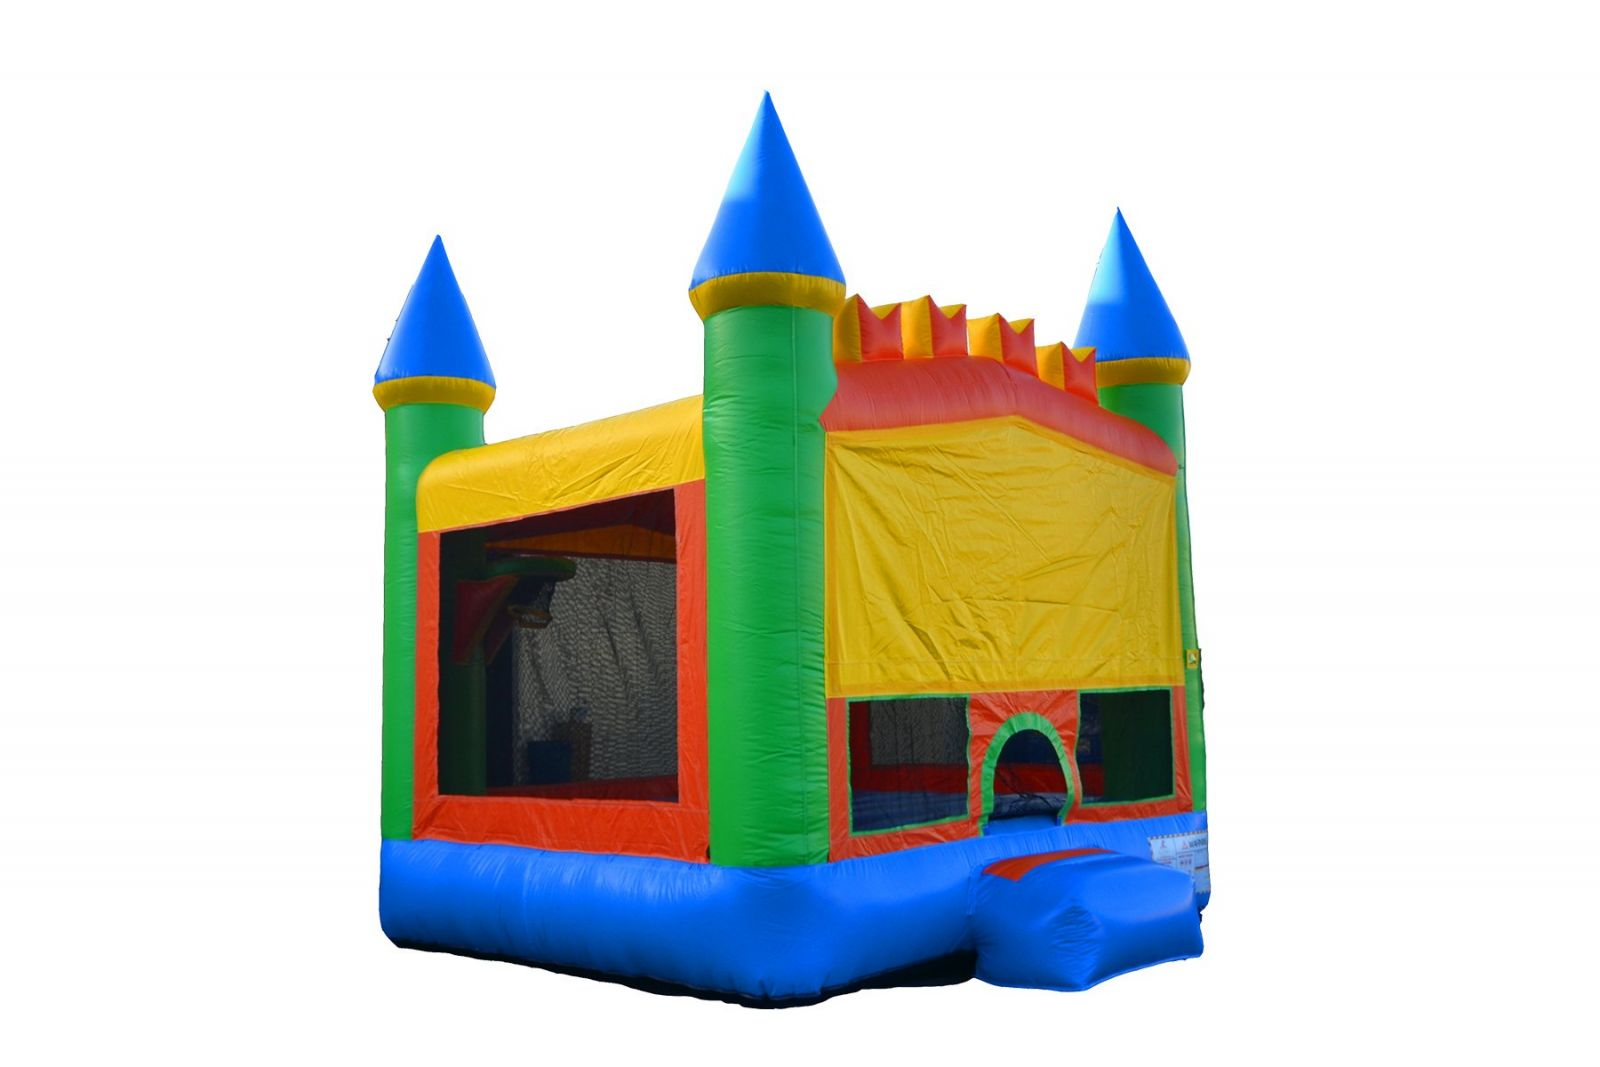 Bounce castle against white background